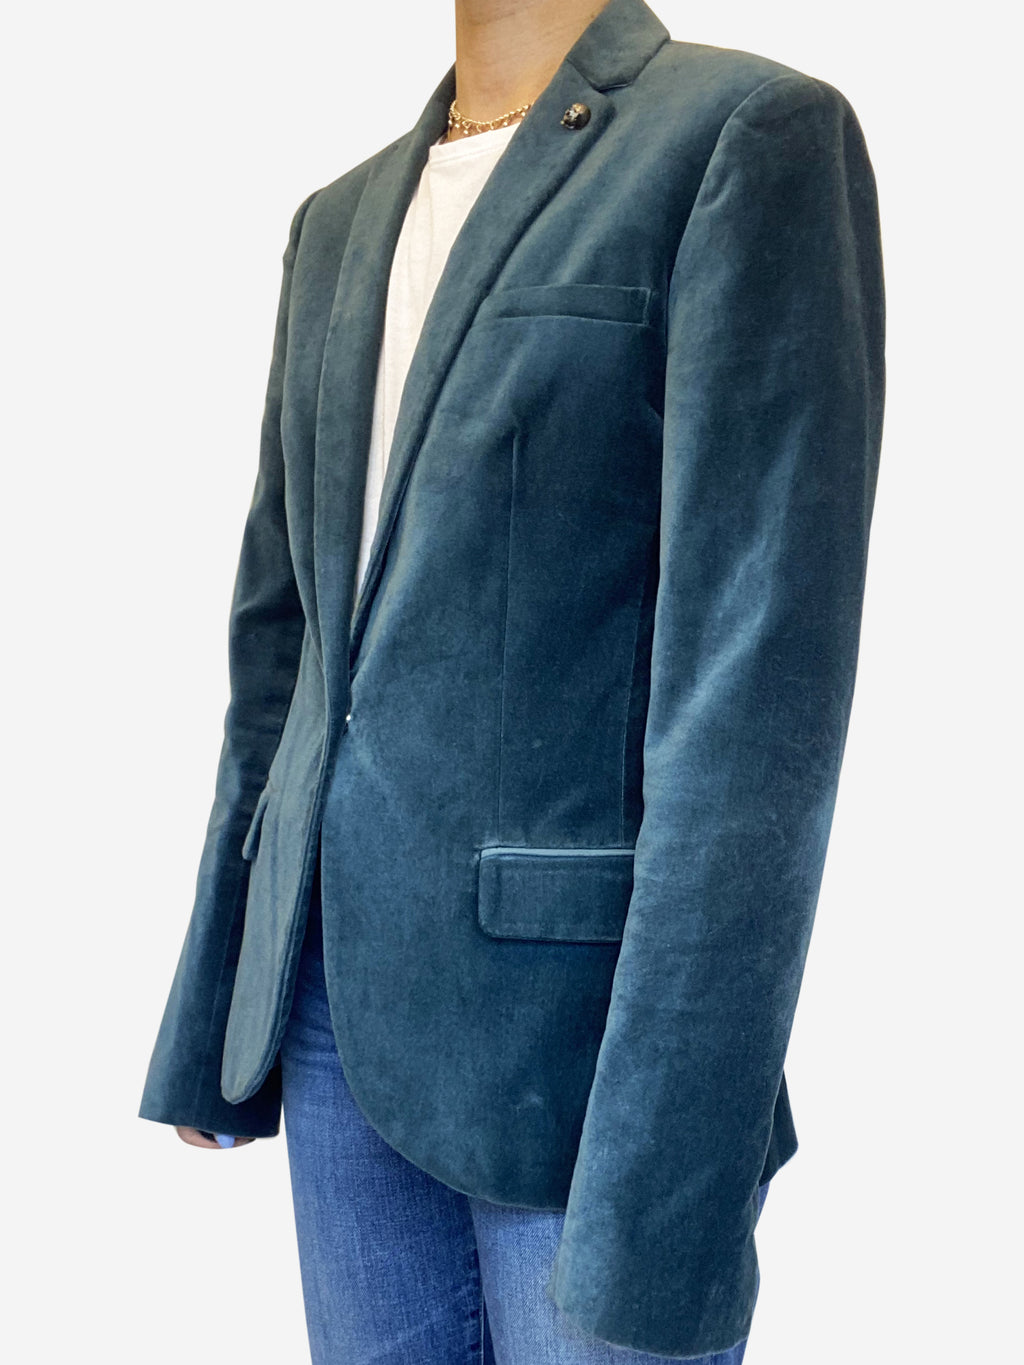 Teal velvet single breasted blazer - size UK 10